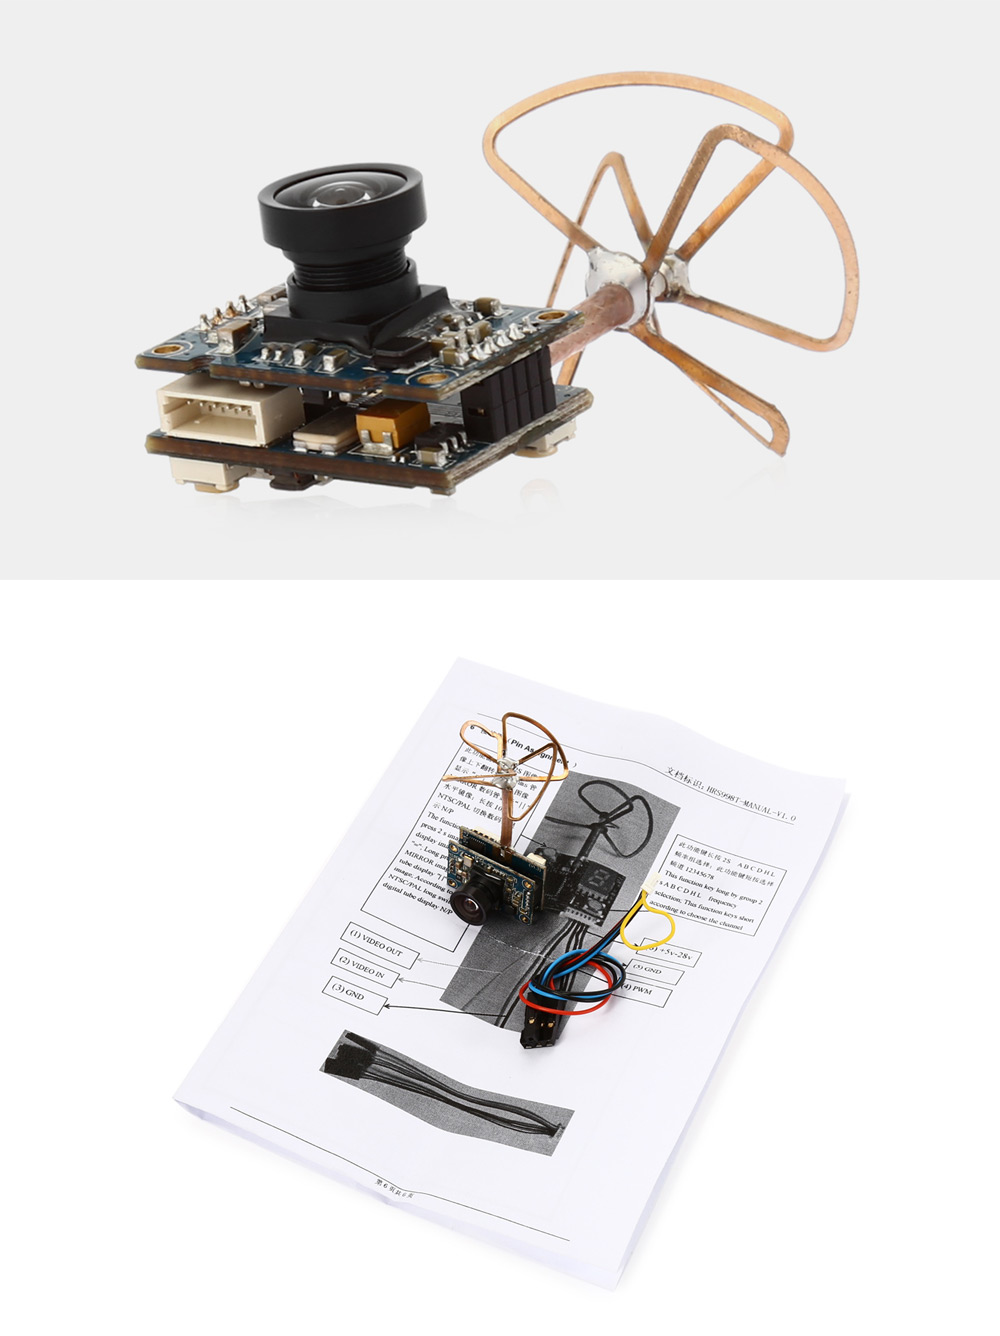 HRS998T 5.8GHz Wireless Camera with Transmitter Antenna for FPV